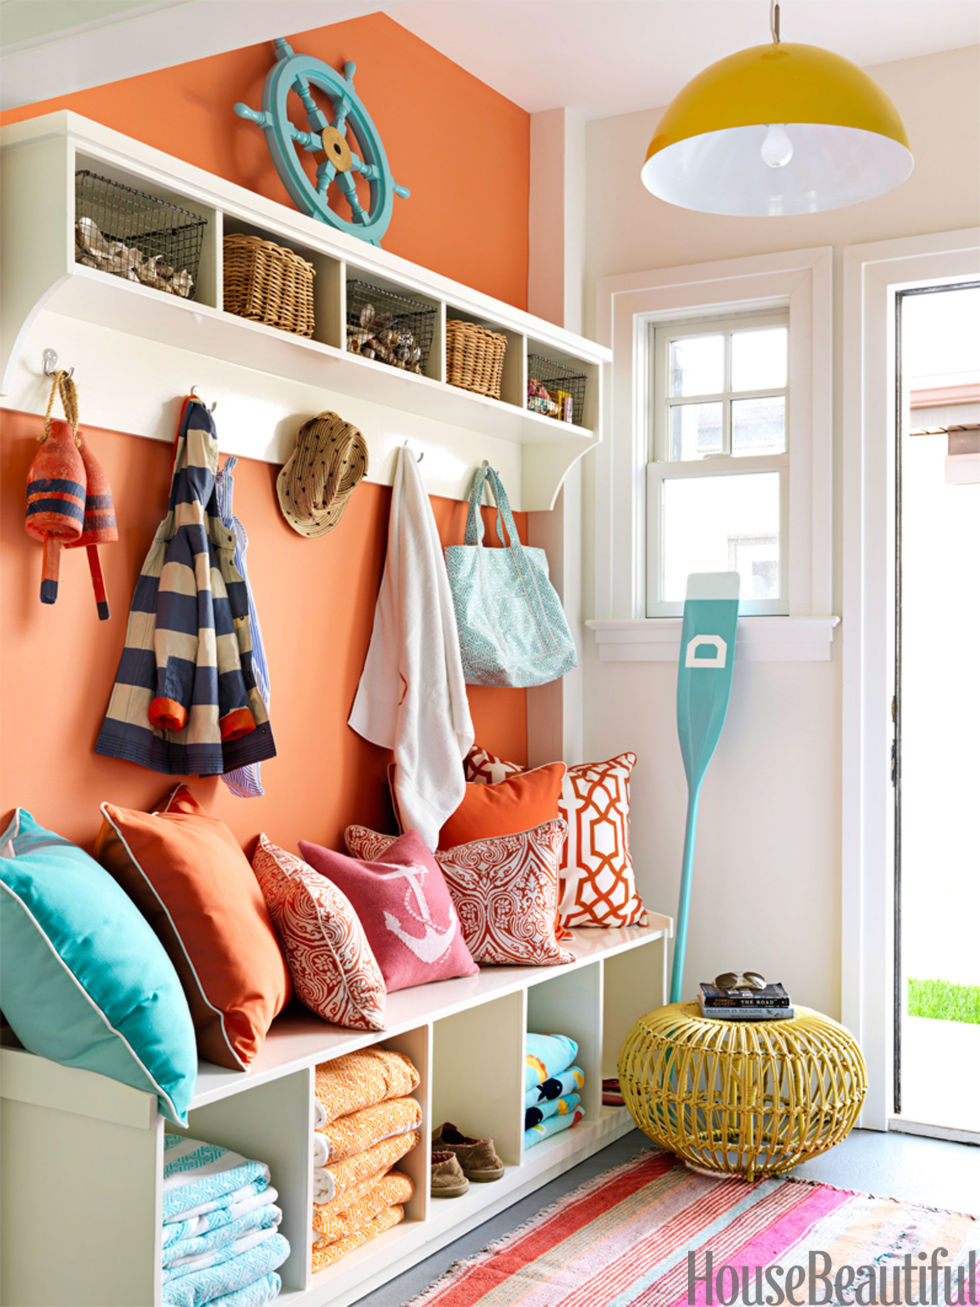 Pumpkin Spice Paint Living Room Orange And Black Rooms Orange And Black Decorating Ideas